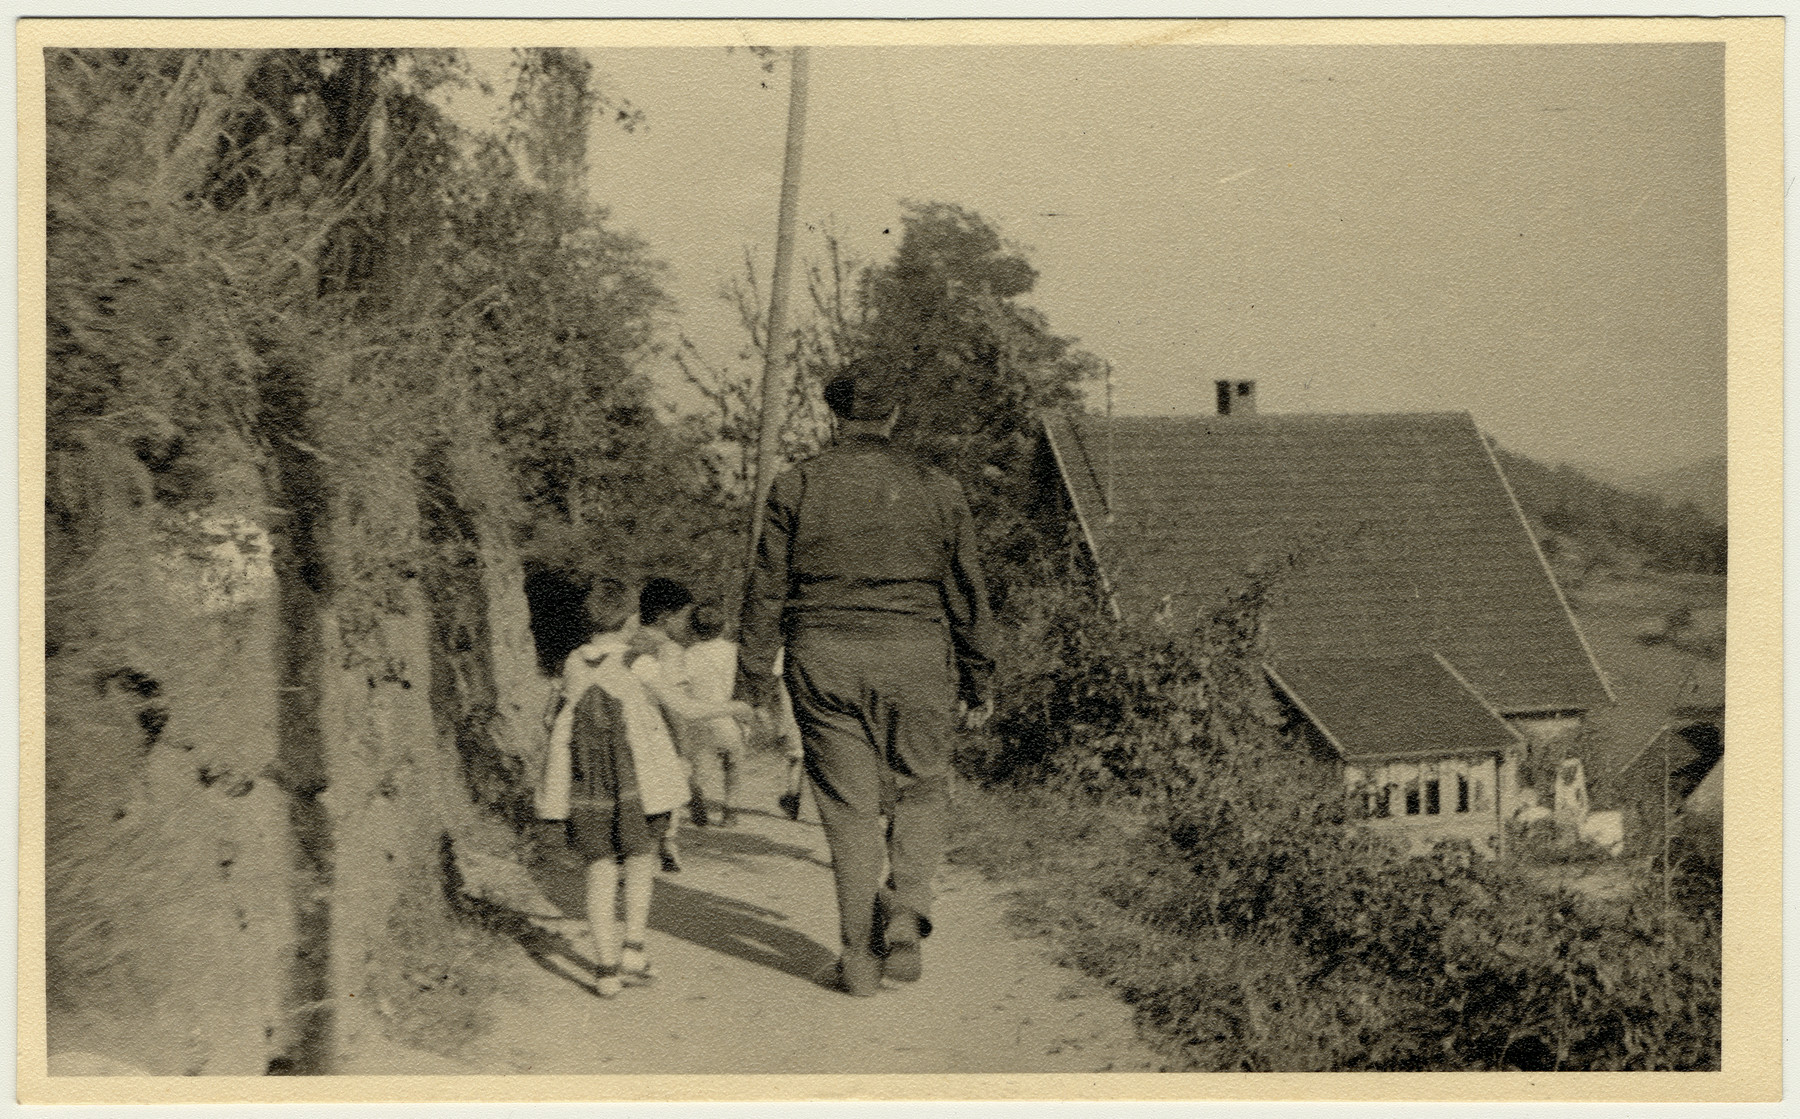 An aid worker accompanies a column of children on their walk [probably in Lindenfels].